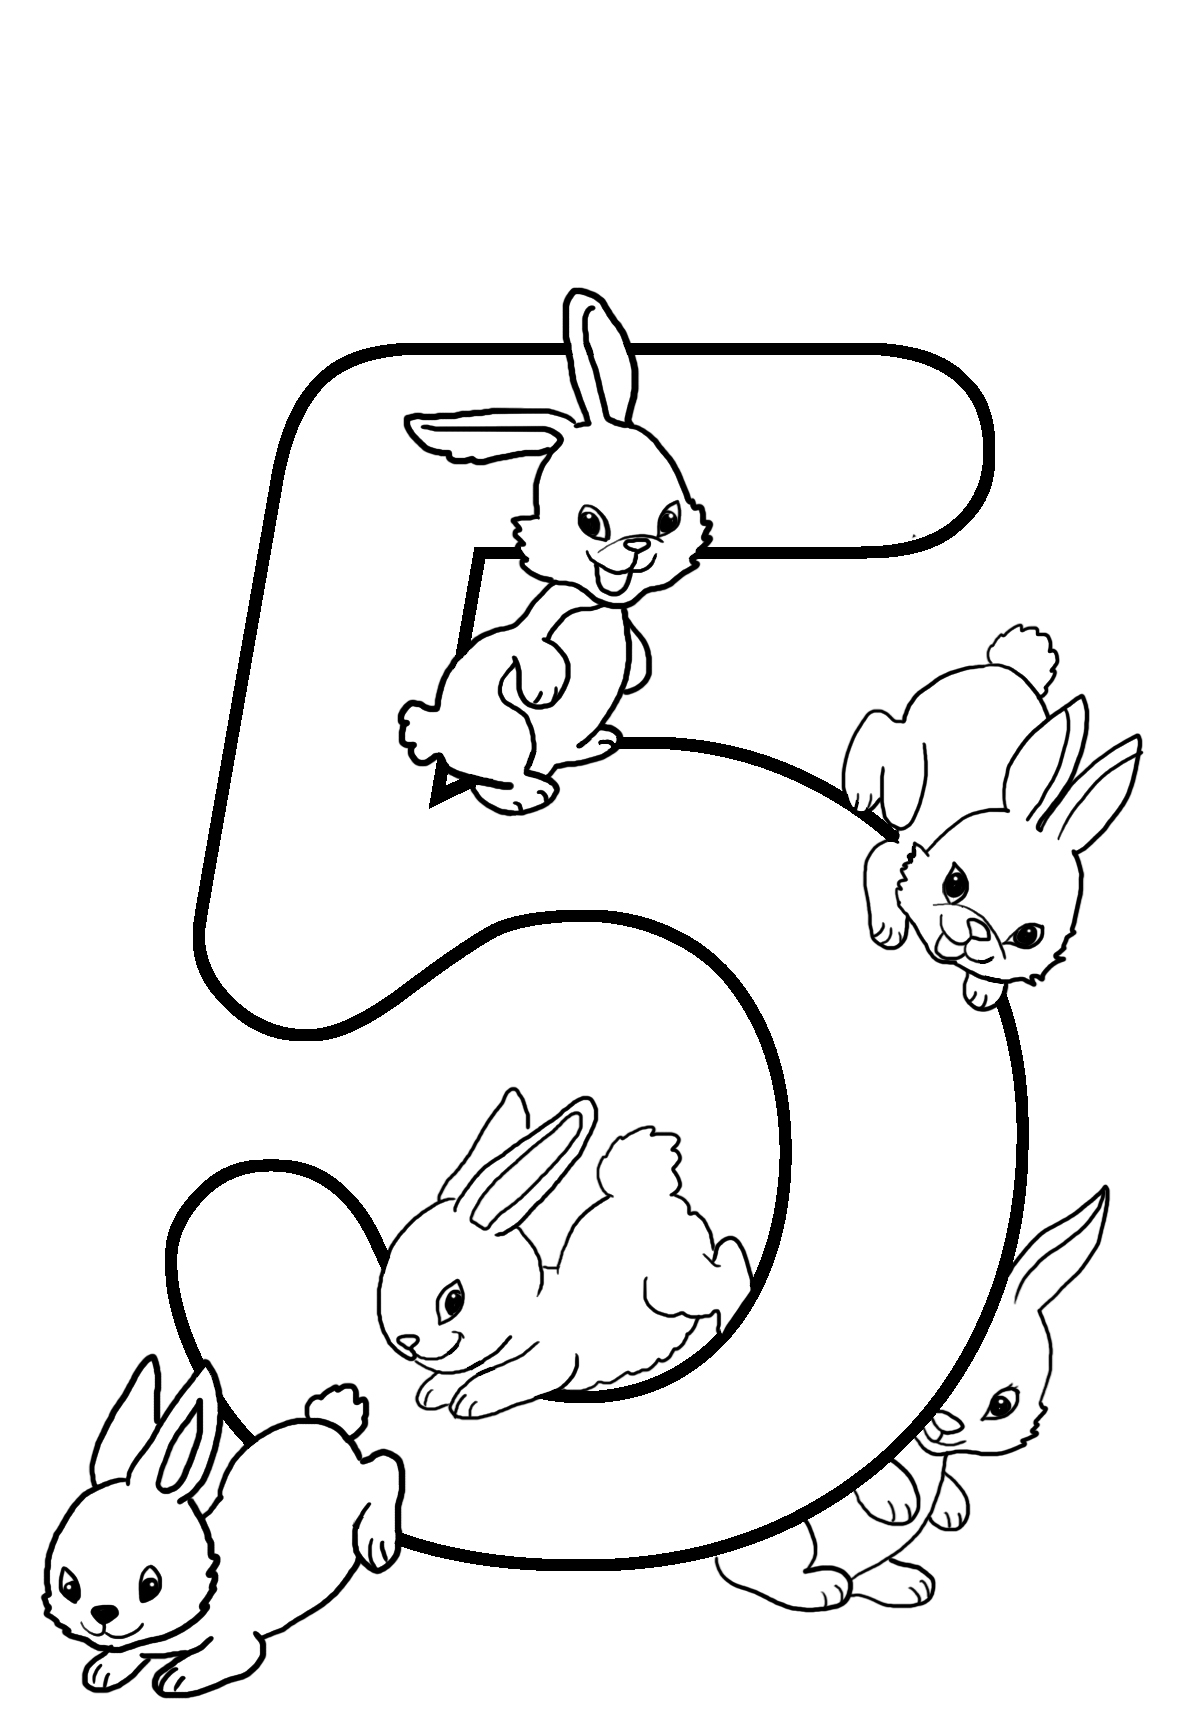 happy 2nd birthday coloring pages curious george make birthday cake coloring pages curious 2nd pages coloring happy birthday